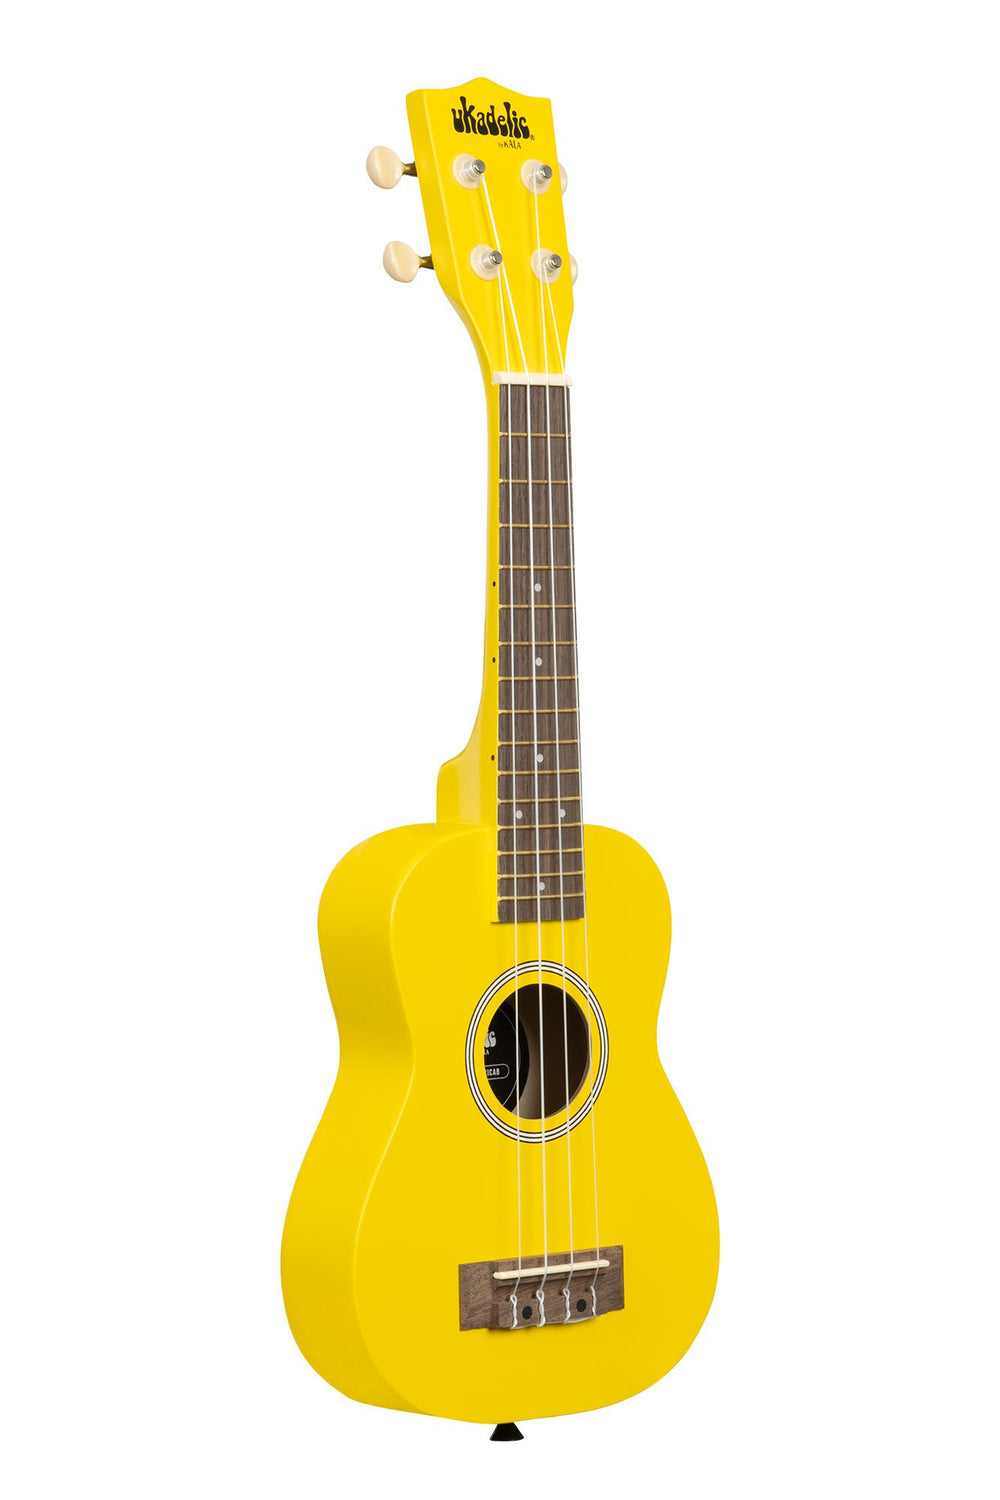 KALA Ukadelic Taxicab Yellow Soprano Ukulele Pack with Tote Bag UK-TAXICAB